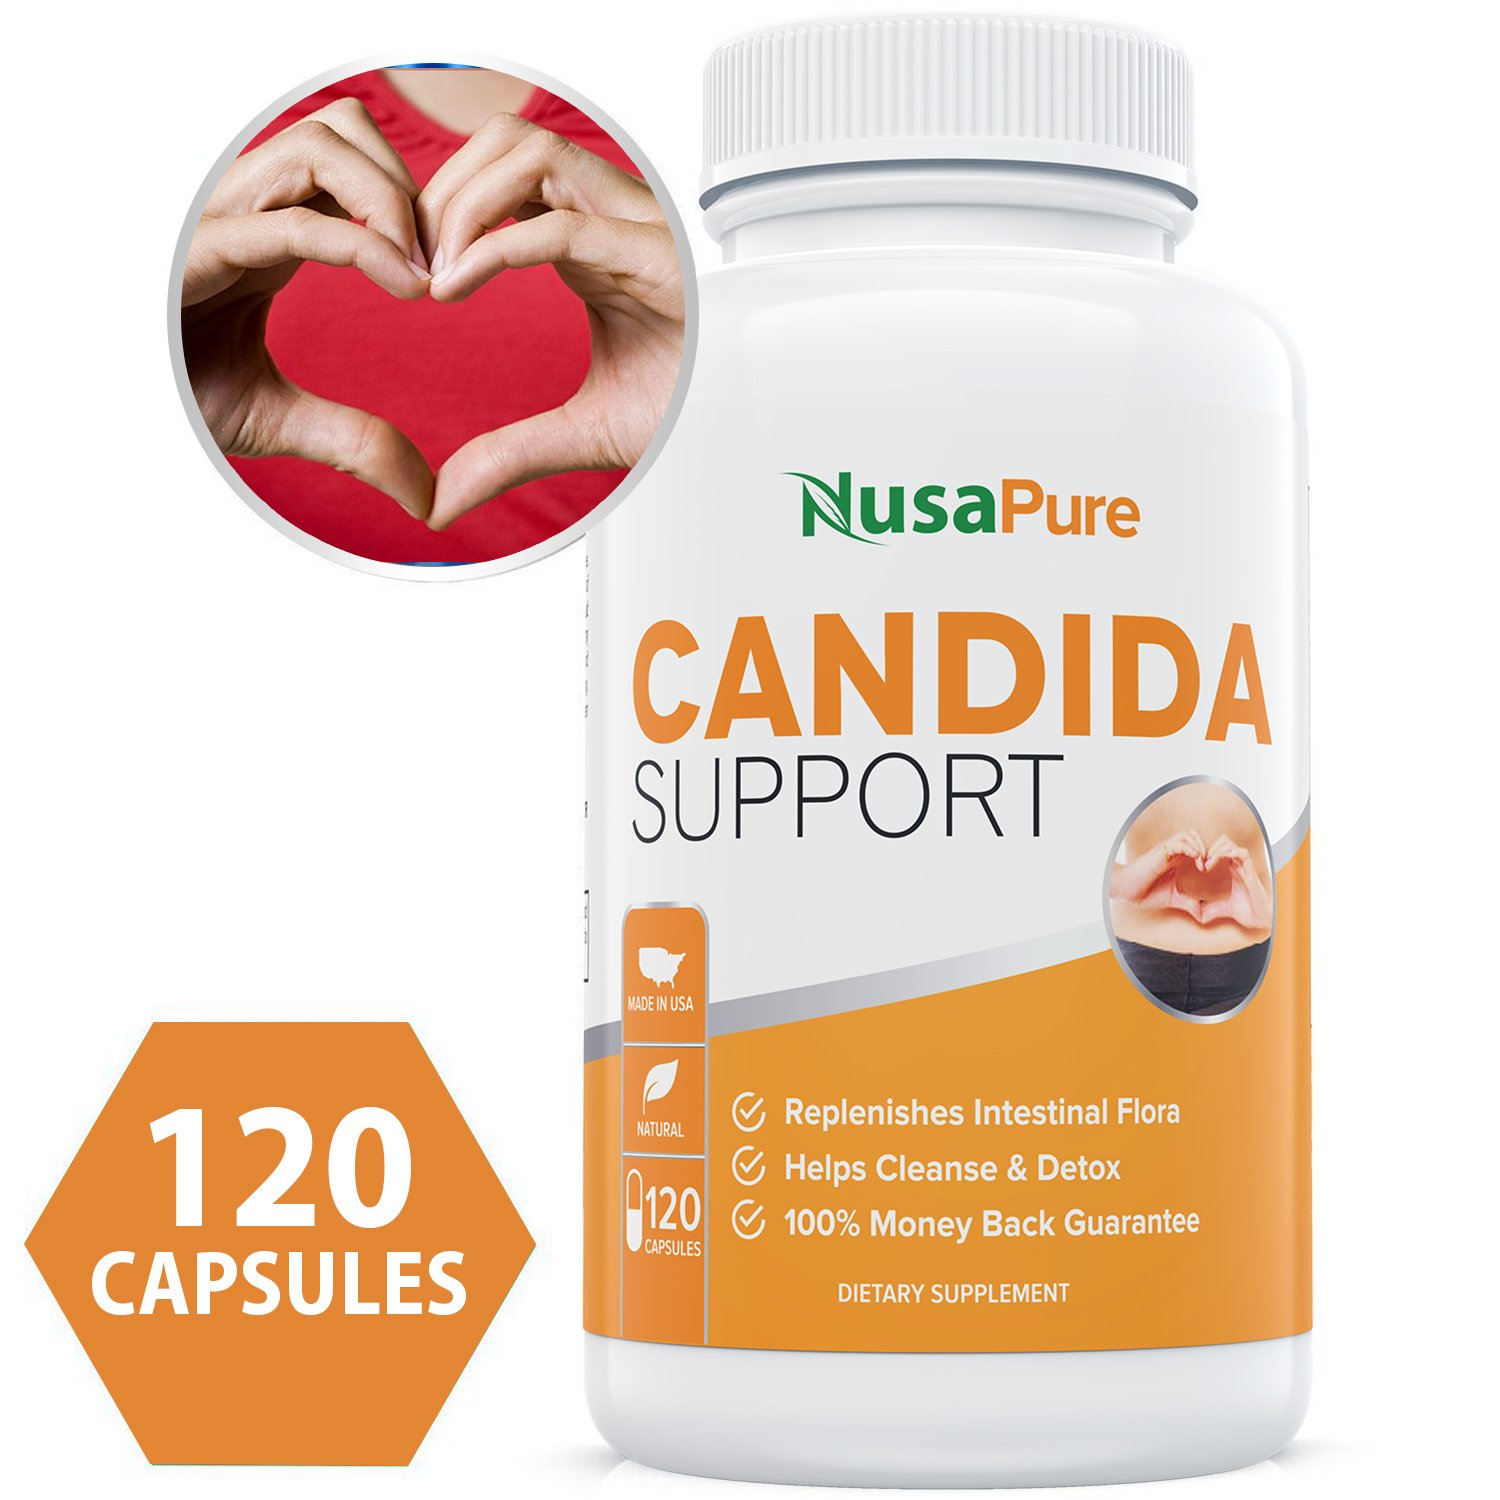 Candida Cleanse (Non-GMO) 120 Capsules: Double The Competition – Powerful Yeast Infection Treatment with Caprylic Acid, Oregano Oil & Probiotics to Clear Candida While Preventing Reoccurrence